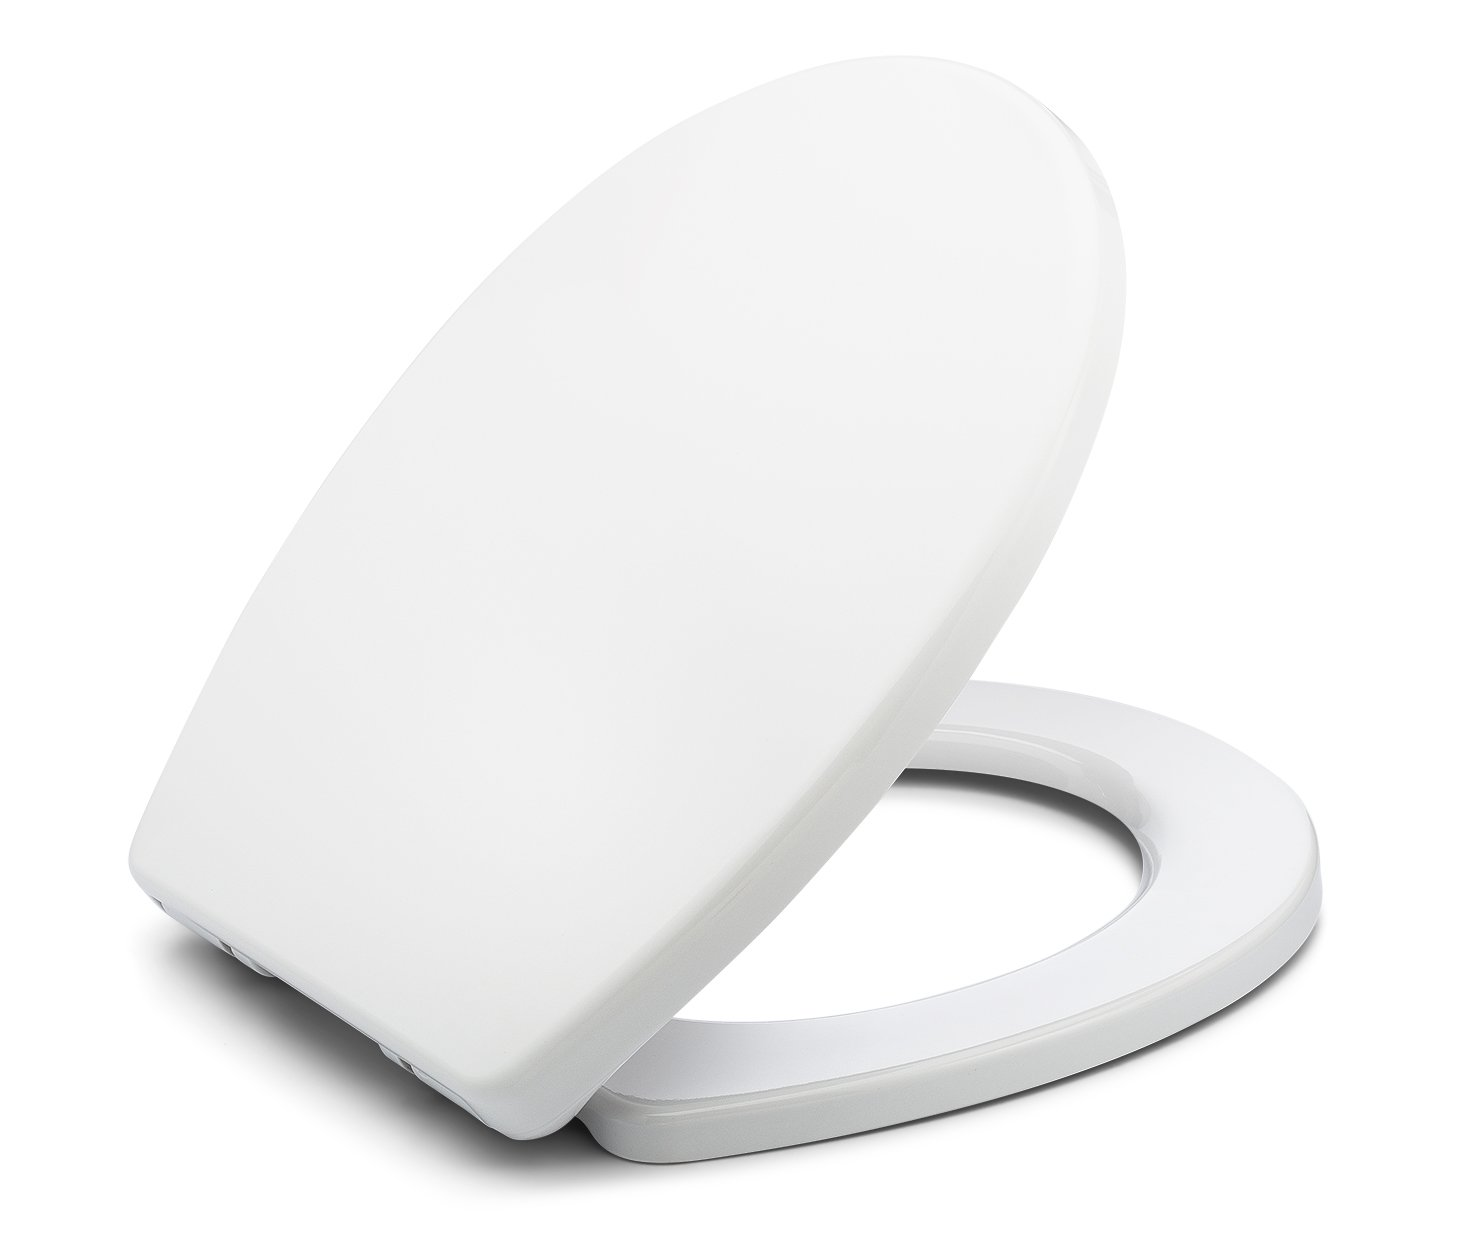 Bath Royale MasterSuite Round Toilet Seat with Cover, White, Slow-Close, Quick-Release for Easy Cleaning by Bath Royale